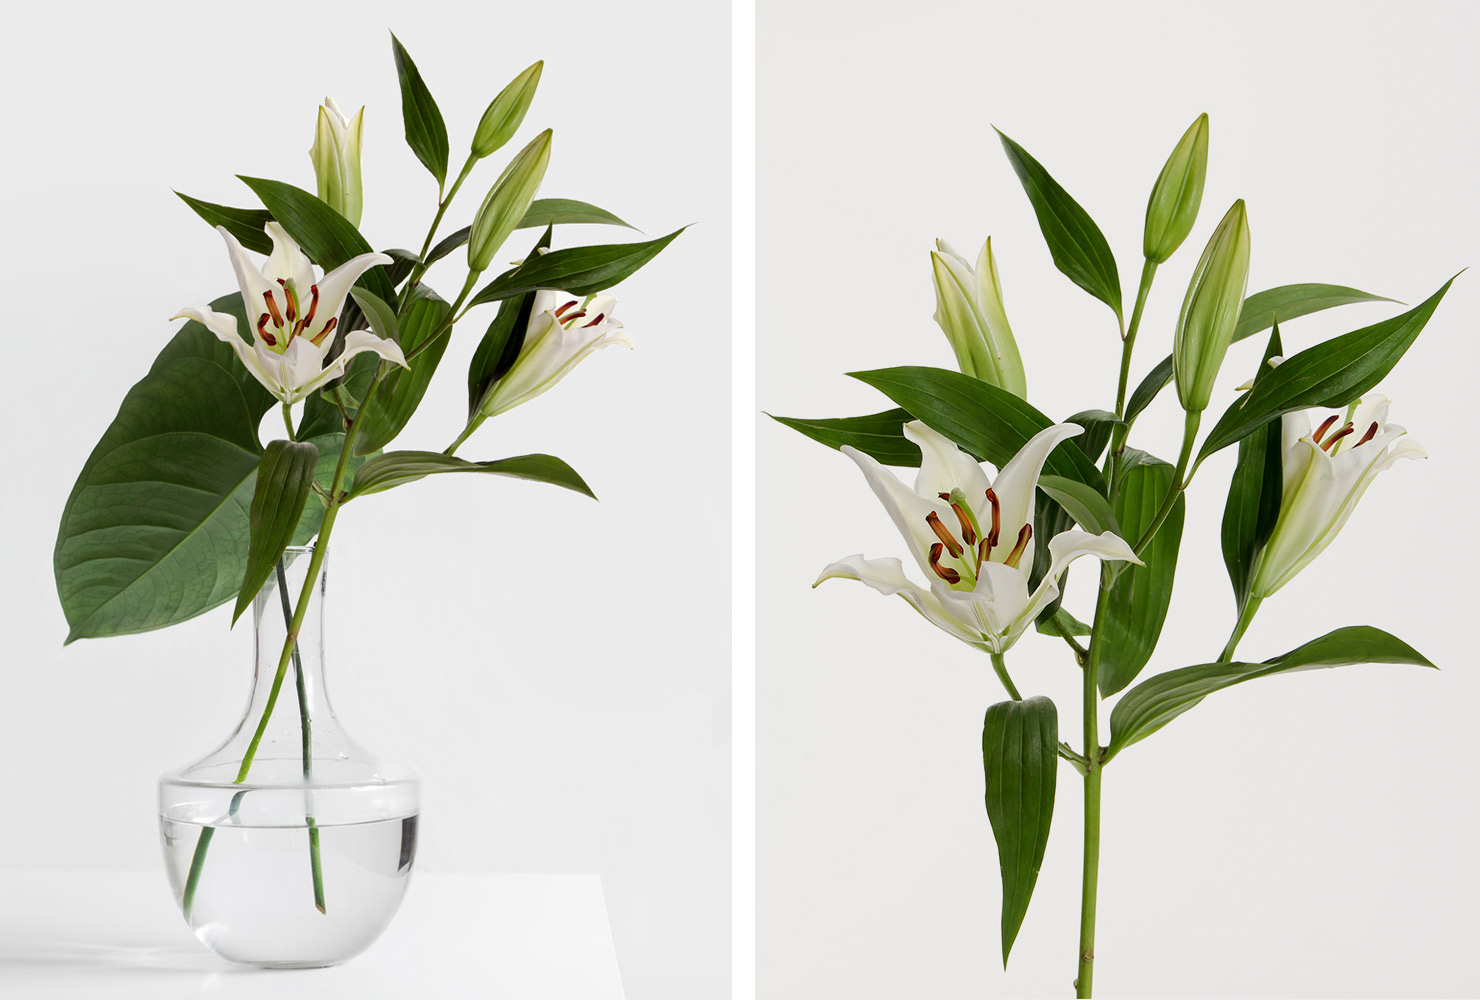 White lilies in vase.